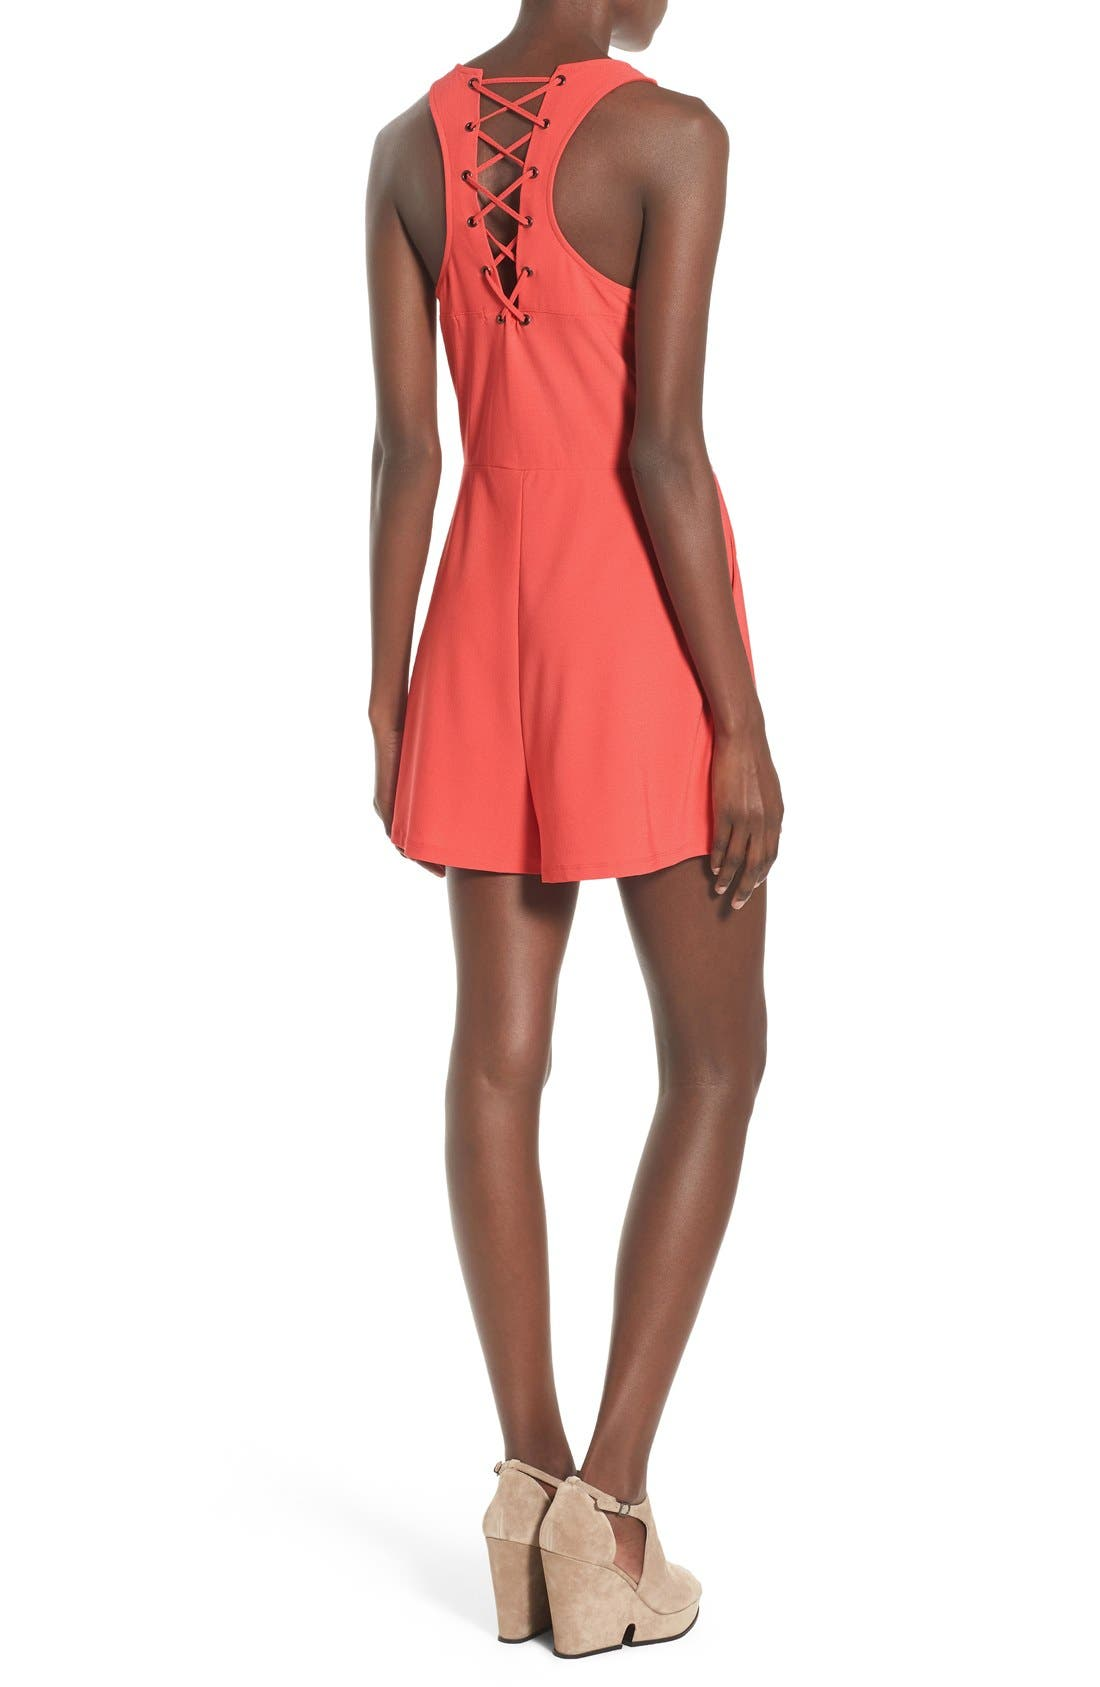 LEITH, Lace-Up Back Romper, Alternate thumbnail 5, color, 958